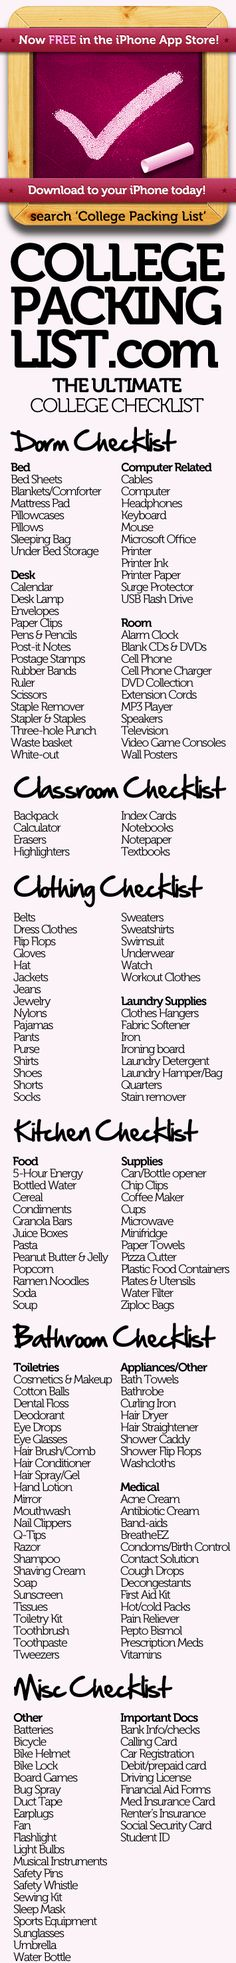 ultimate college packing list - also an iPhone app